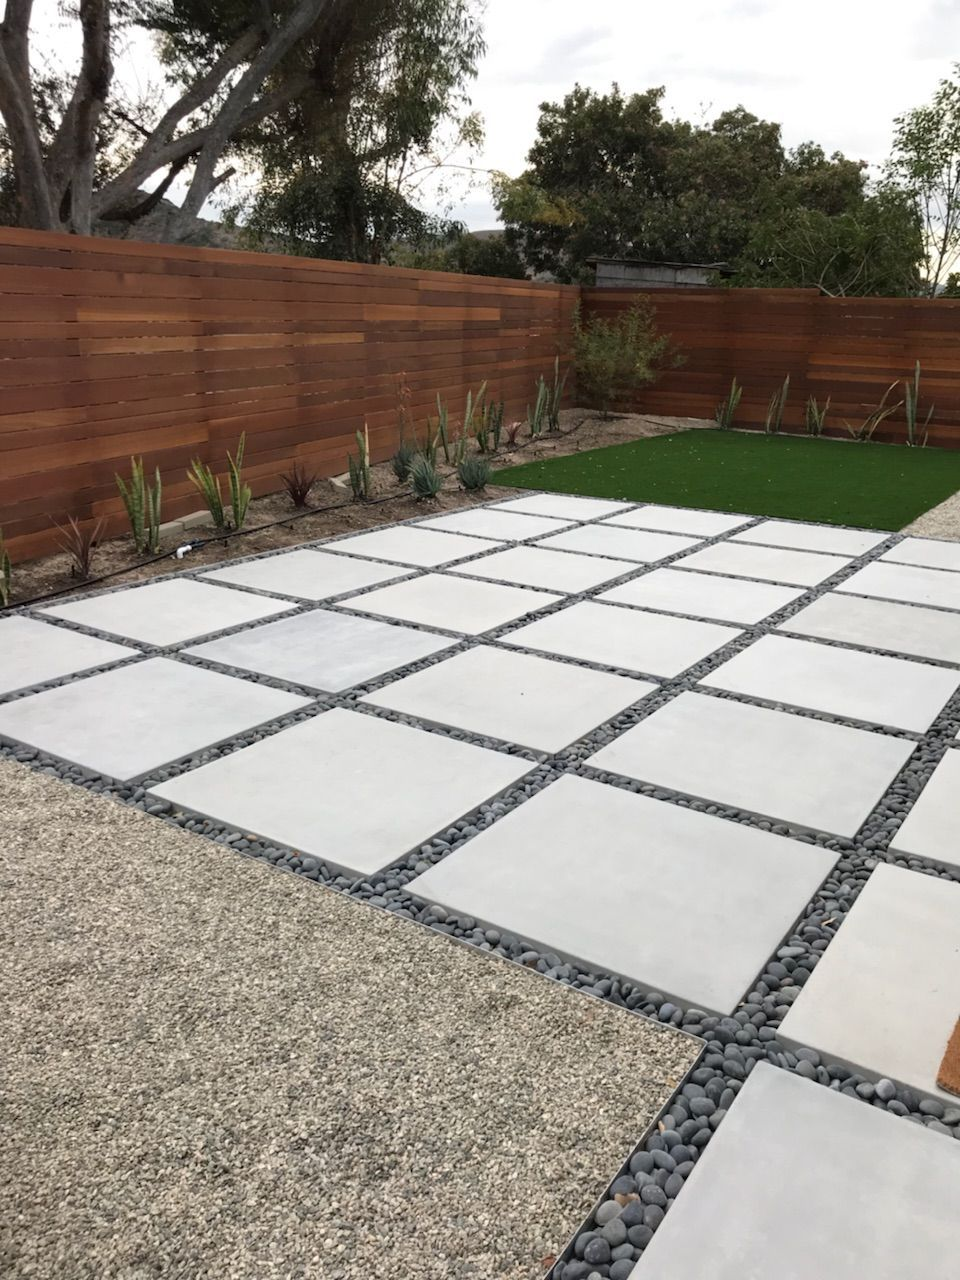 Concrete Pavers Modern Backyard Landscaping Large Backyard Landscaping Backyard Remodel Modern backyard with pavers